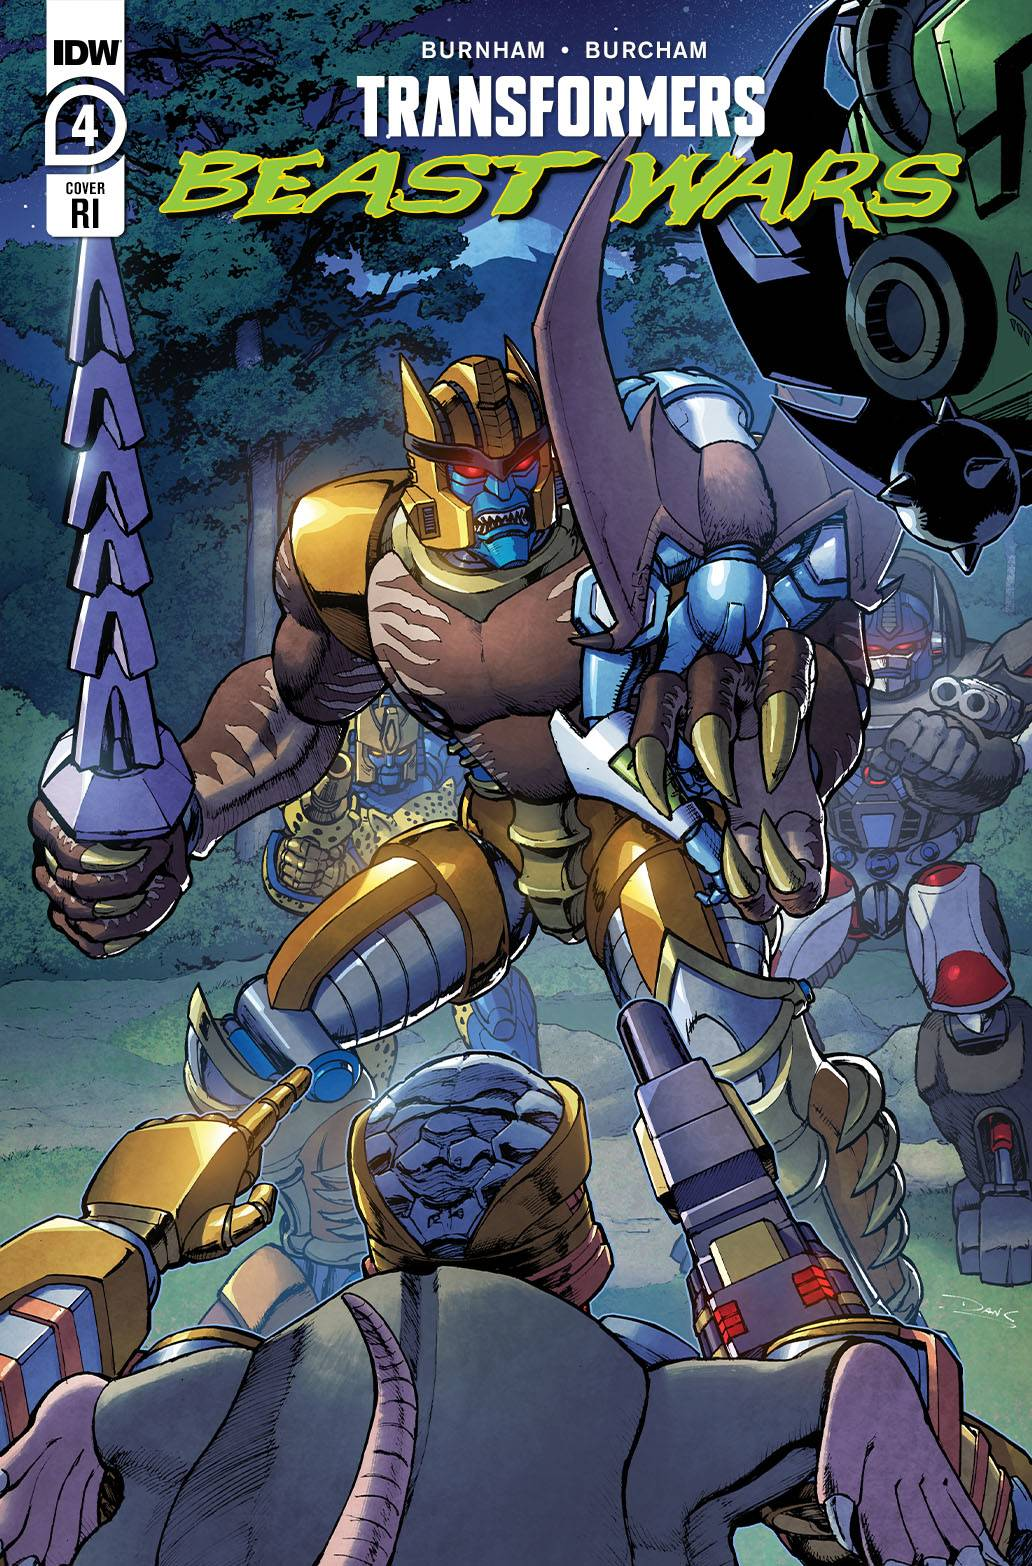 STL184125 ComicList: IDW Publishing New Releases for 05/19/2021